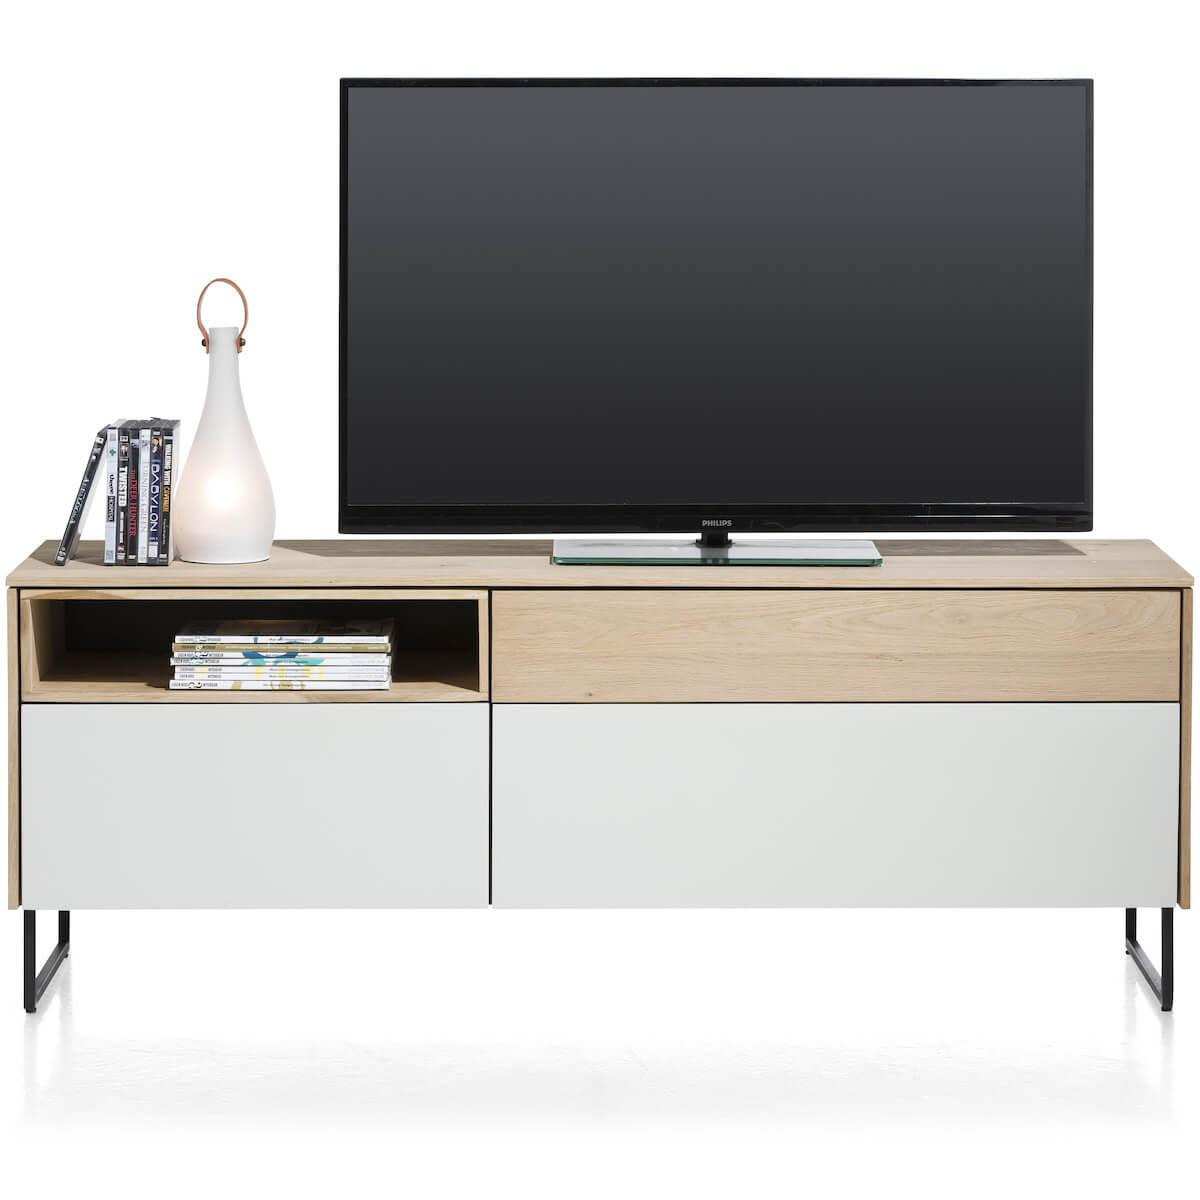 Meuble TV 160cm DARWIN Xooon